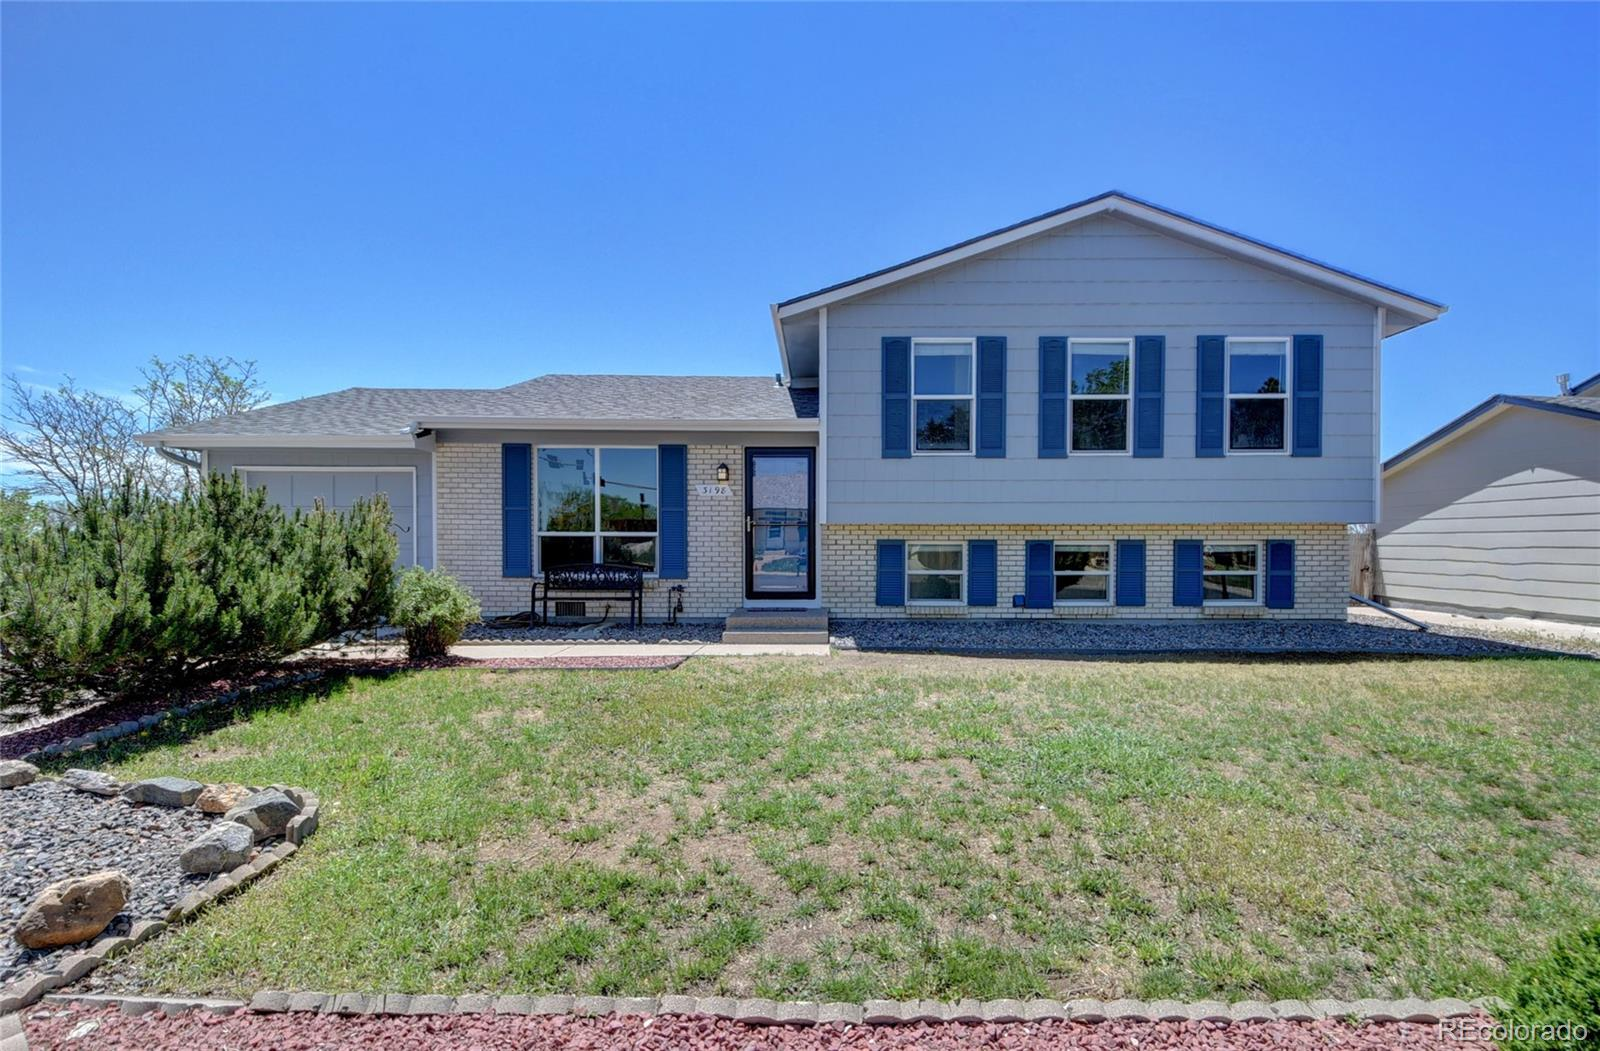 3198 E 99th Way Property Photo - Thornton, CO real estate listing